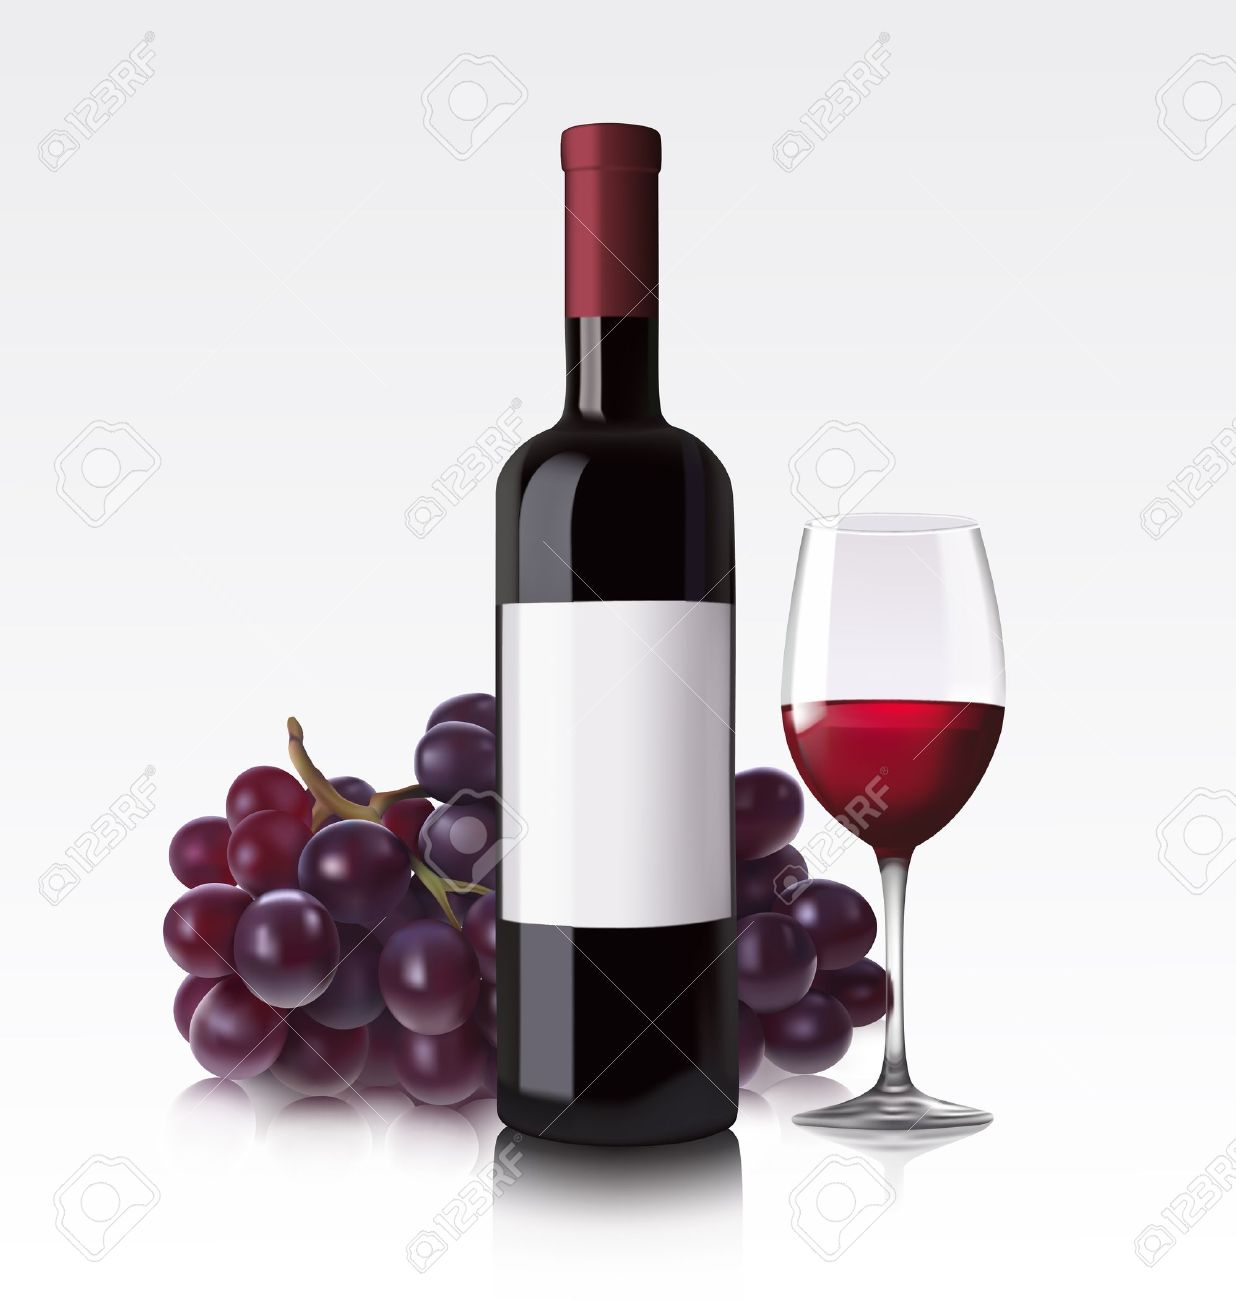 Wine Bottle And Grapes Png - Wine Bottle And Glass Clipart